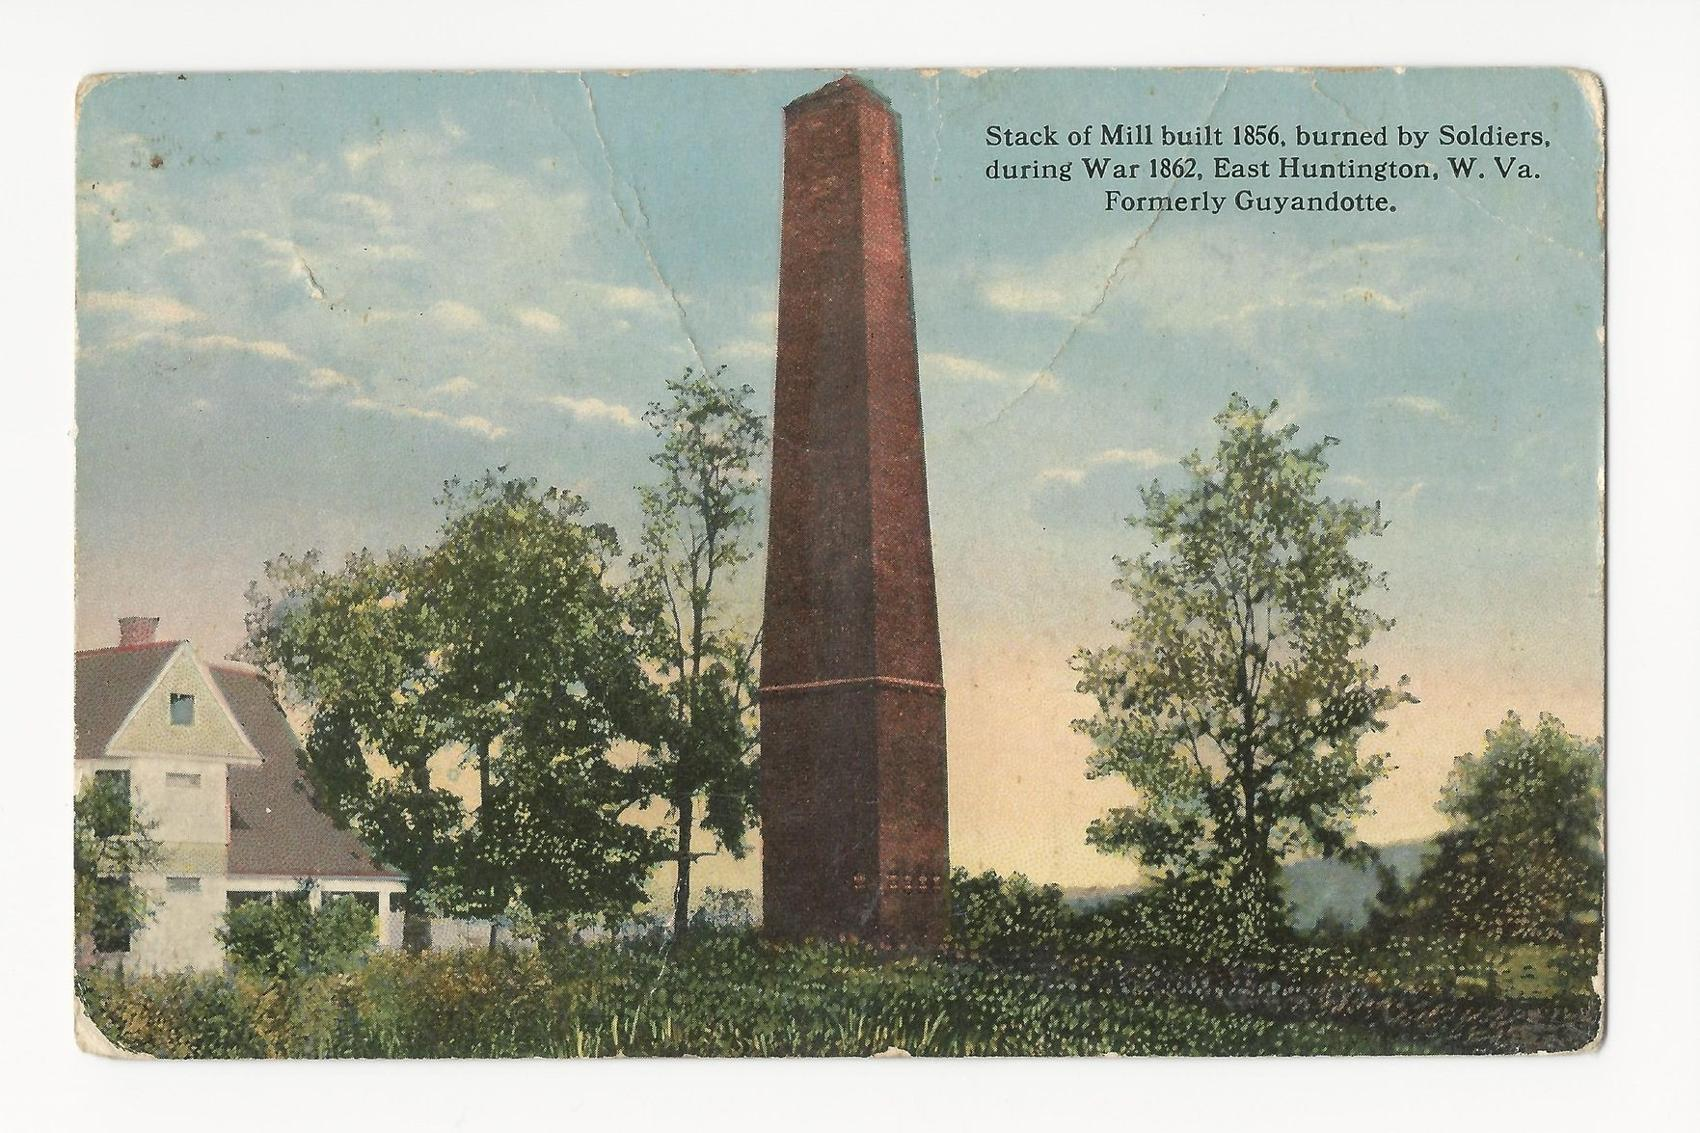 Postcard depicting the Buffington Mill's smokestack